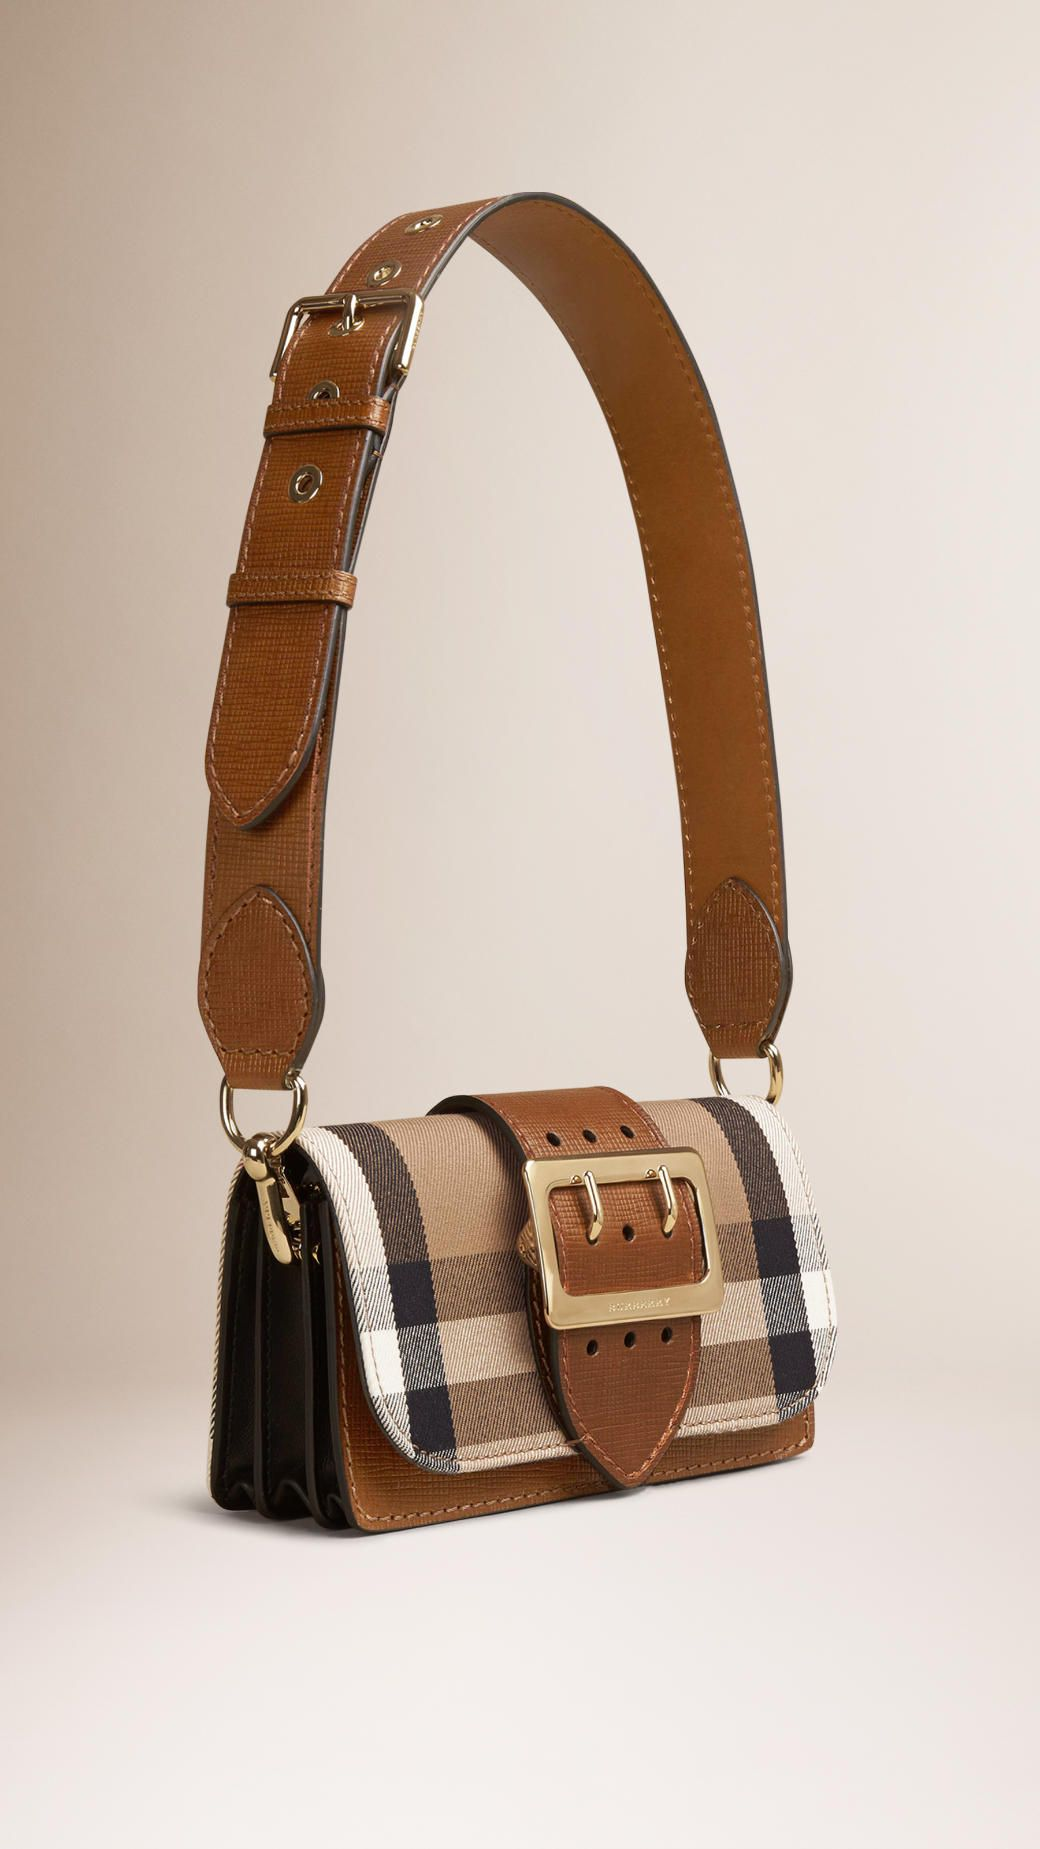 09d9187d5b36 The Small Belt Shoulder Bag in House Check and Leather Tan